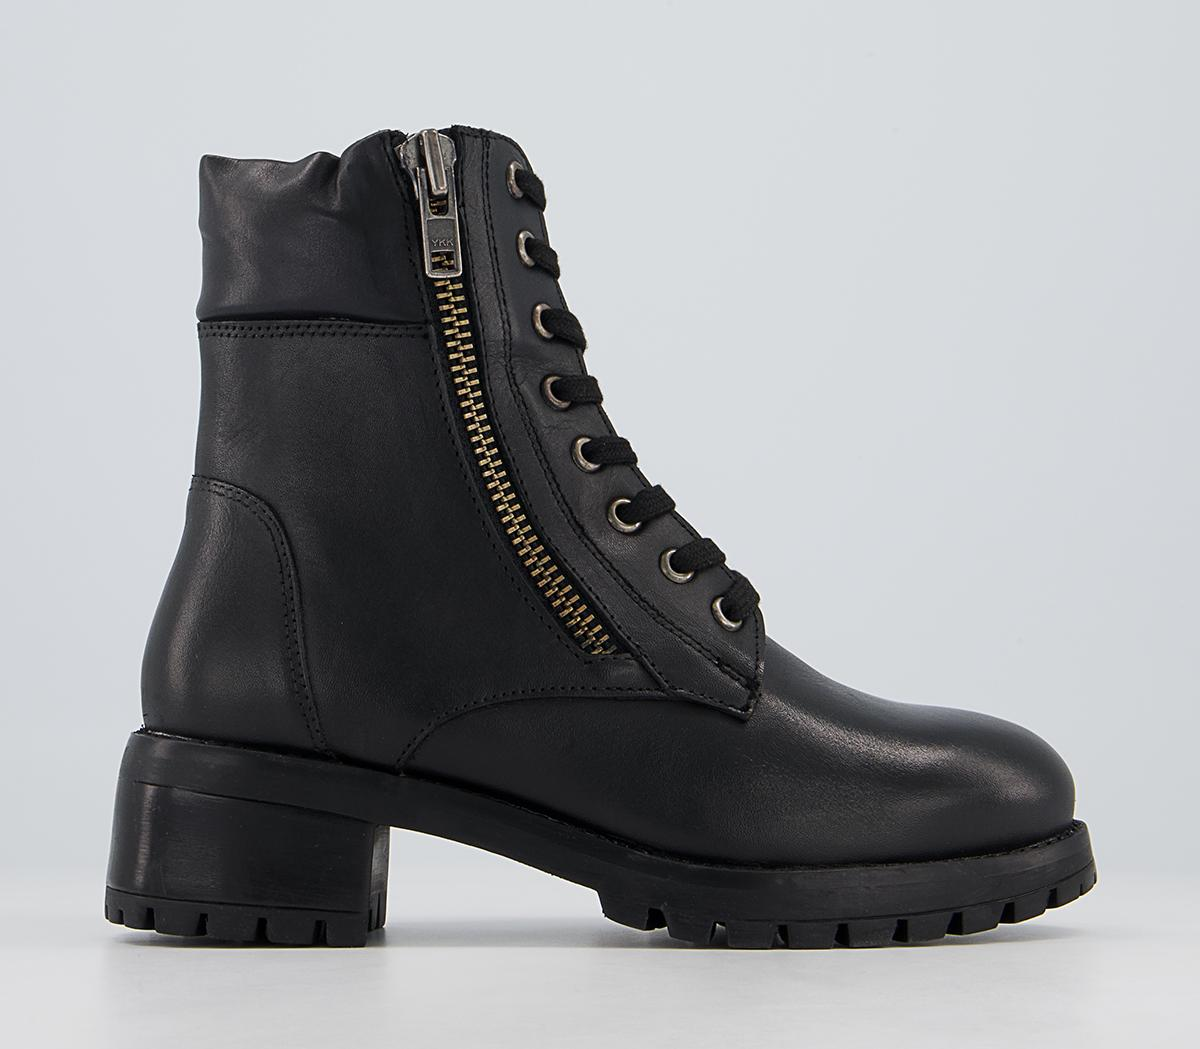 Appealing Heeled Side Zip Lace Up Boots